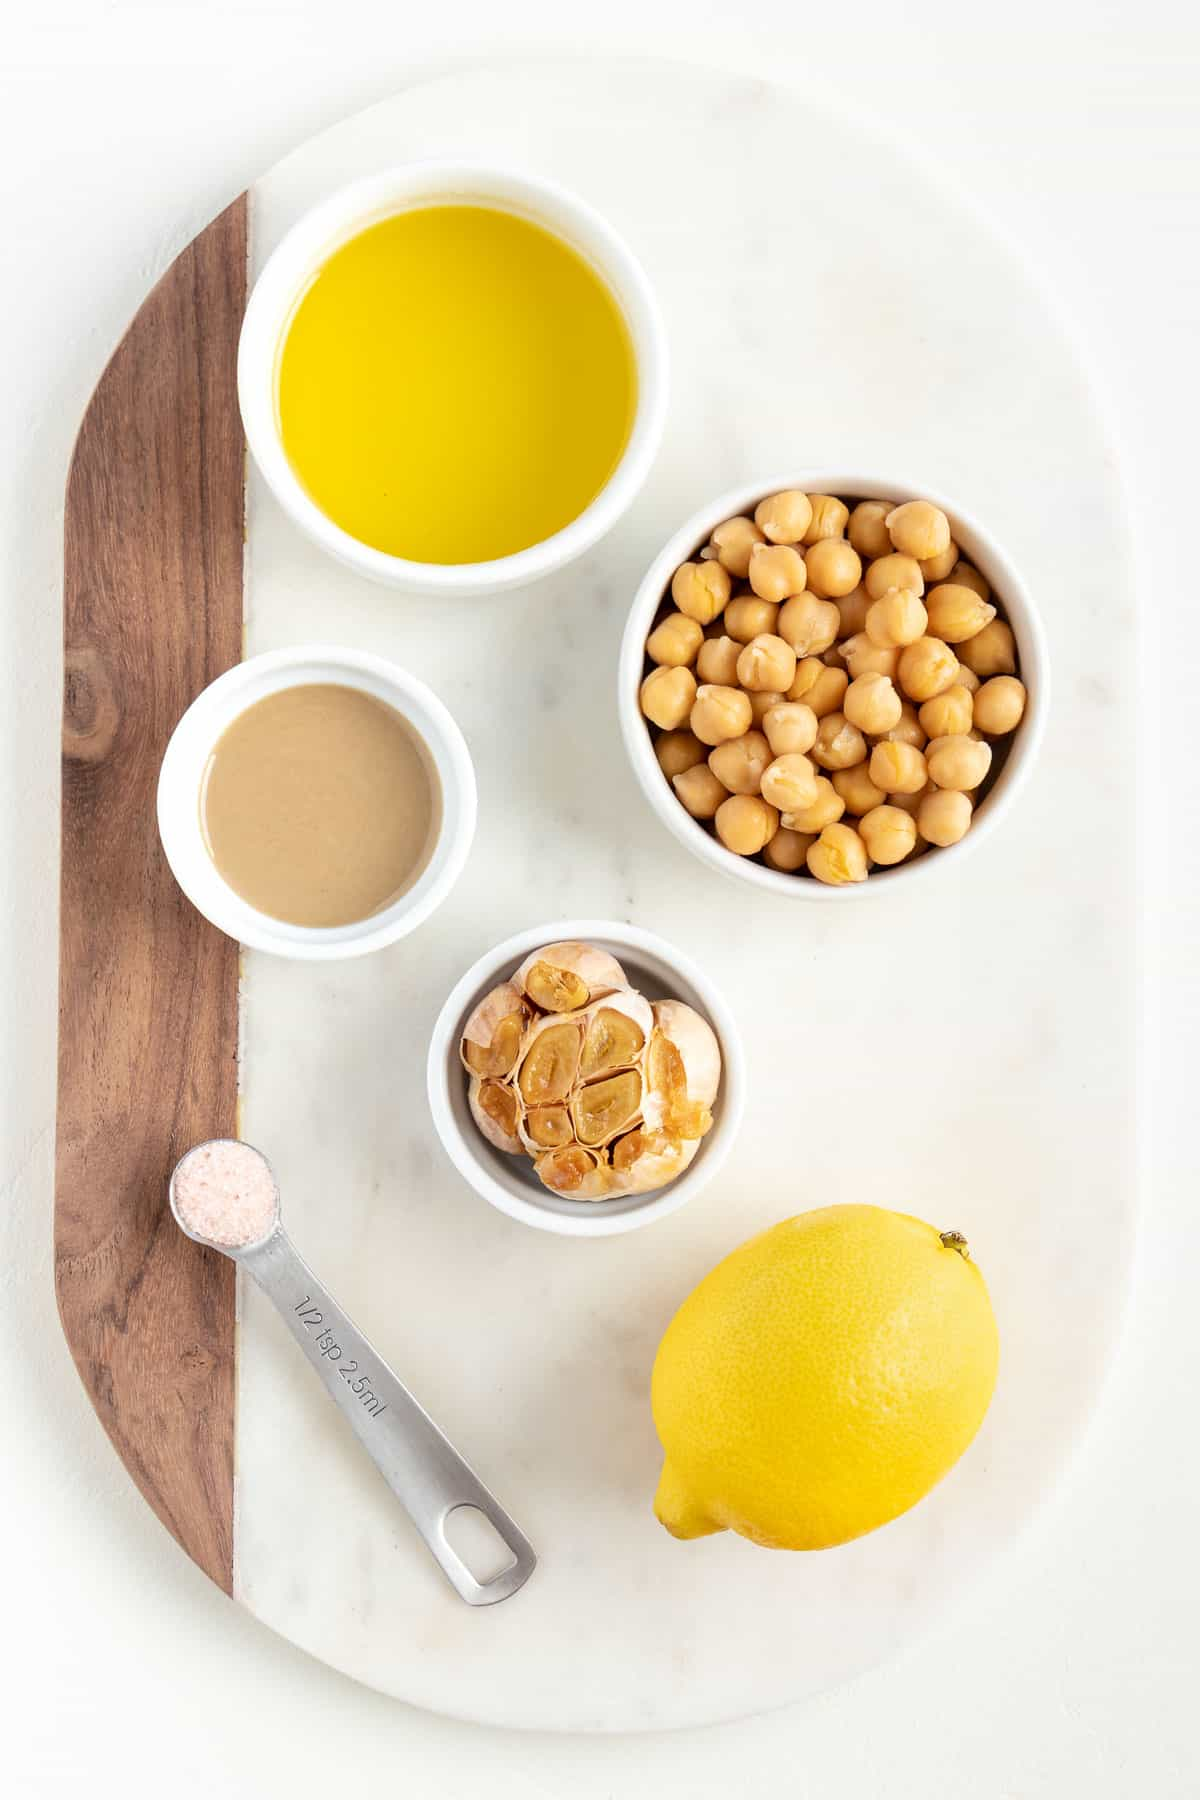 white marble cutting board with small bowls of olive oil, garbanzo beans, roasted garlic, lemon, and tahini